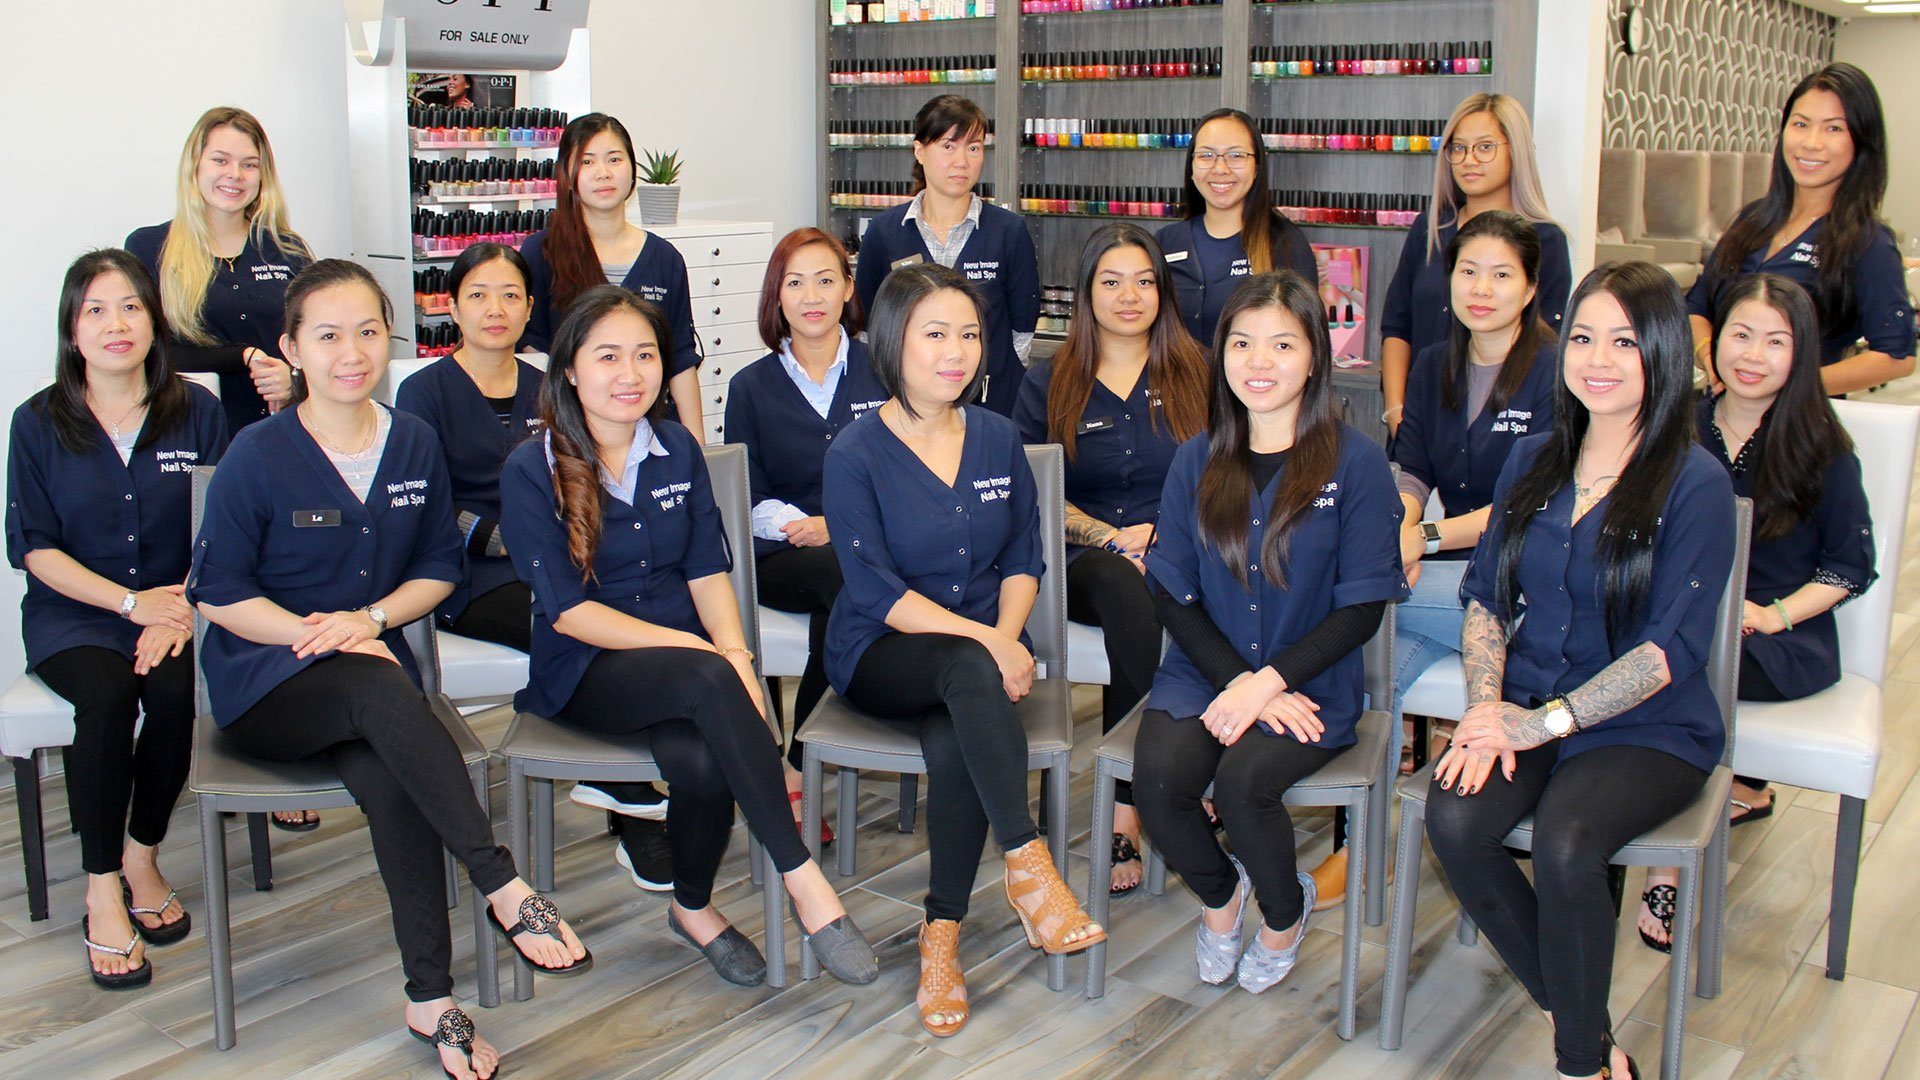 St. Petersburg Nail Salon Staff